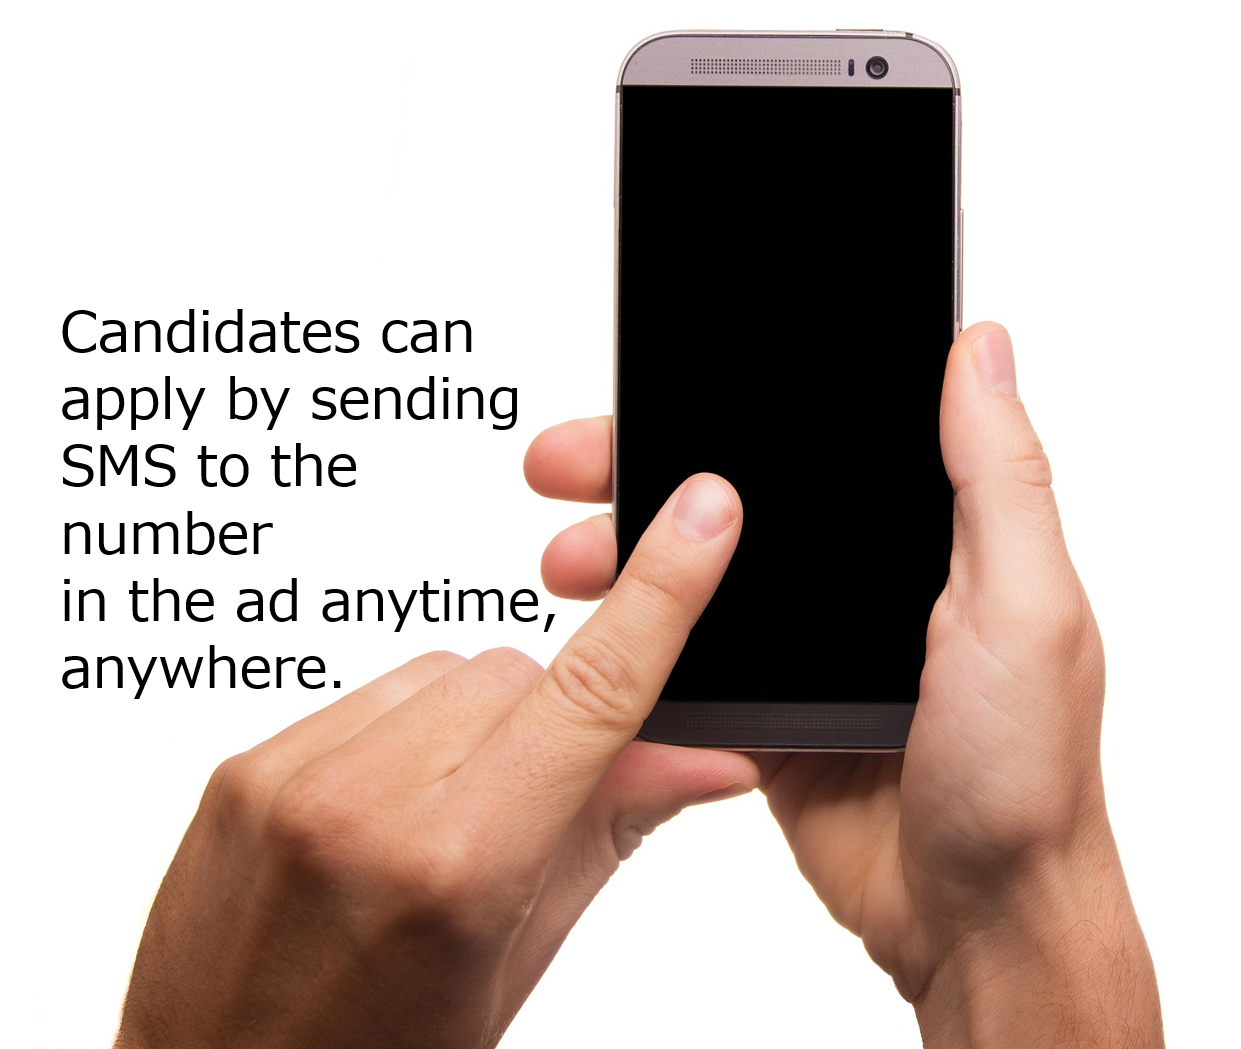 SMS anytime & anywhere